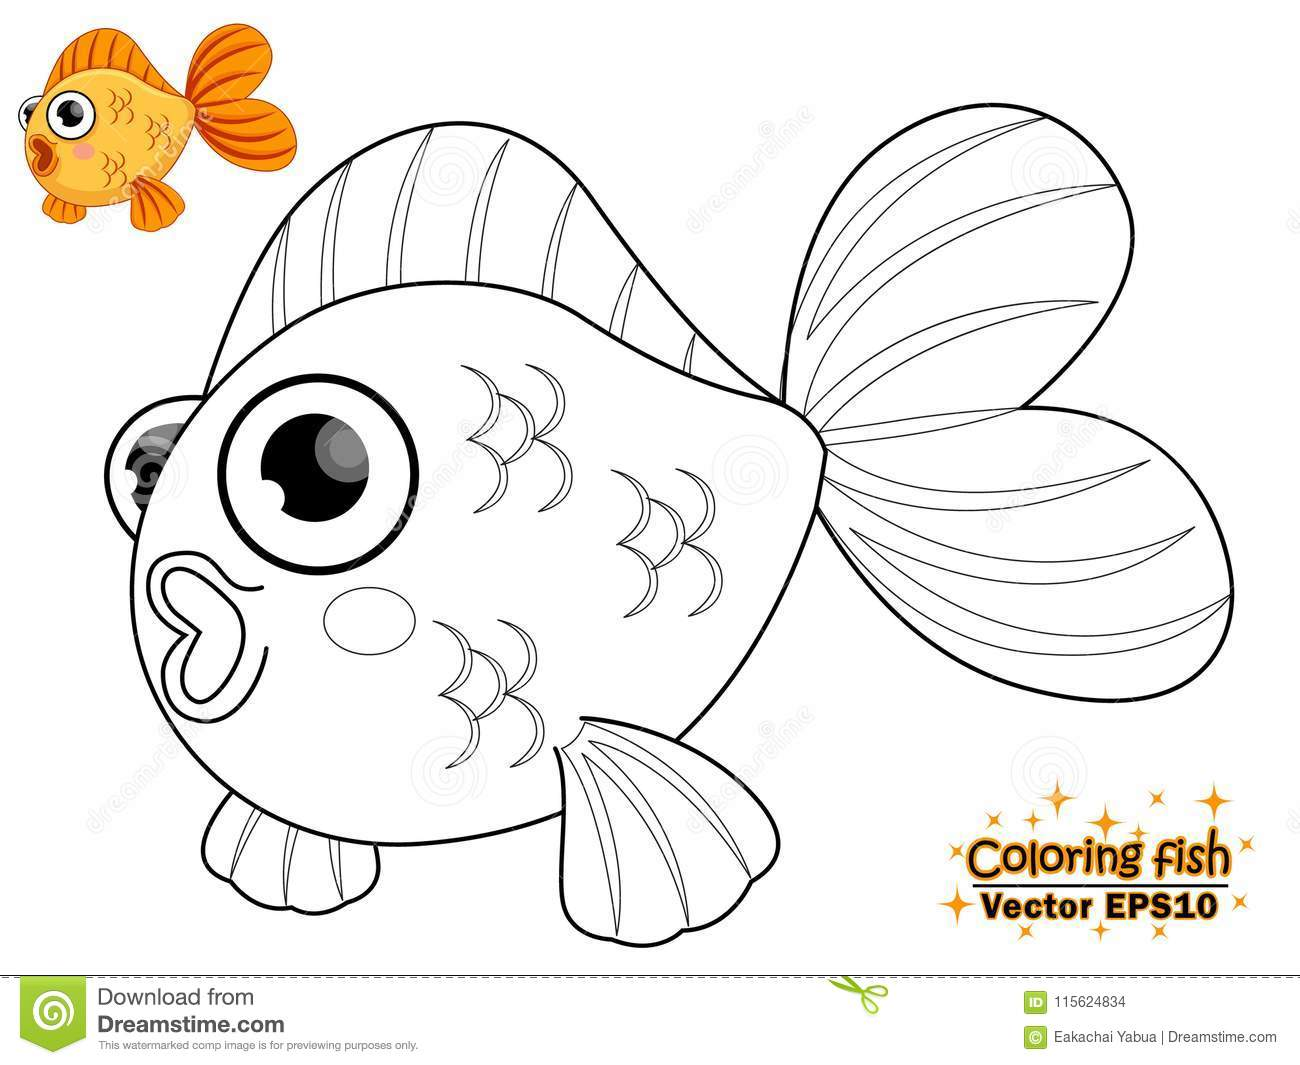 Coloring The Cute Cartoon Fish Educational Game For Kids